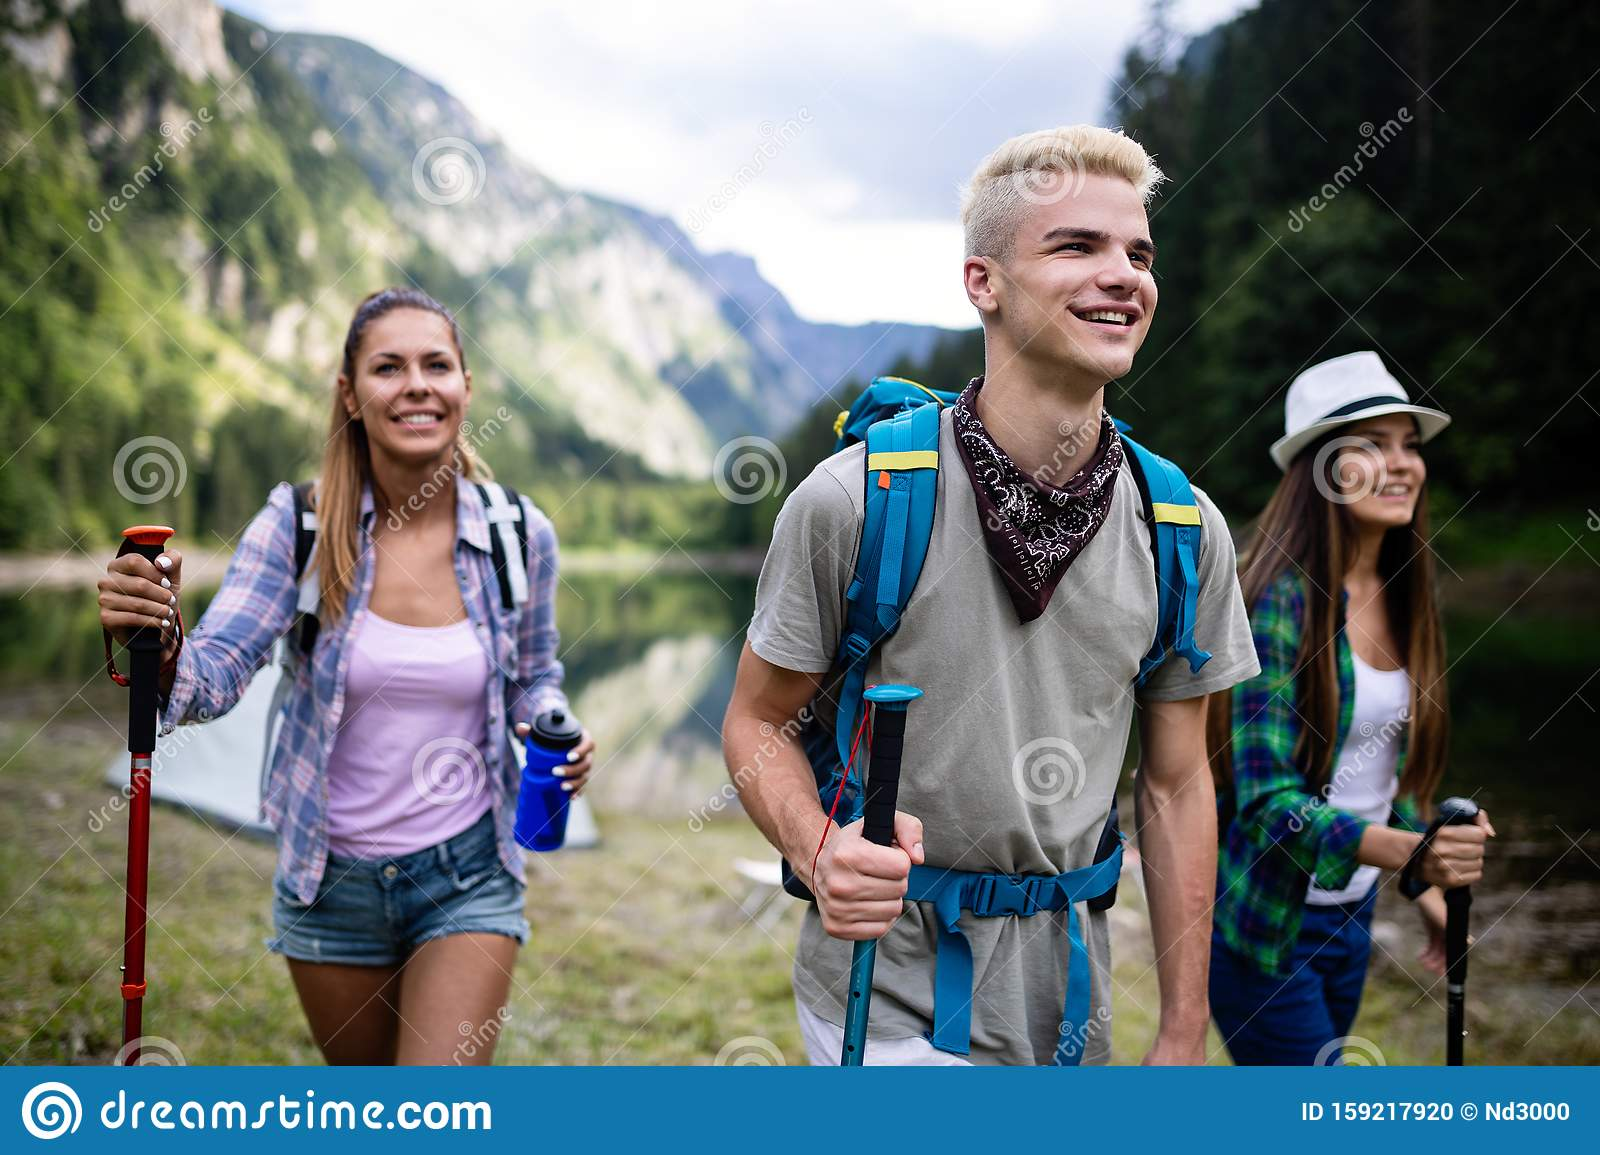 Smiling Friends Walking With Backpacks Adventure Travel Tourism Hike And People Concept Stock Photo Image Of Destination Lifestyle 159217920